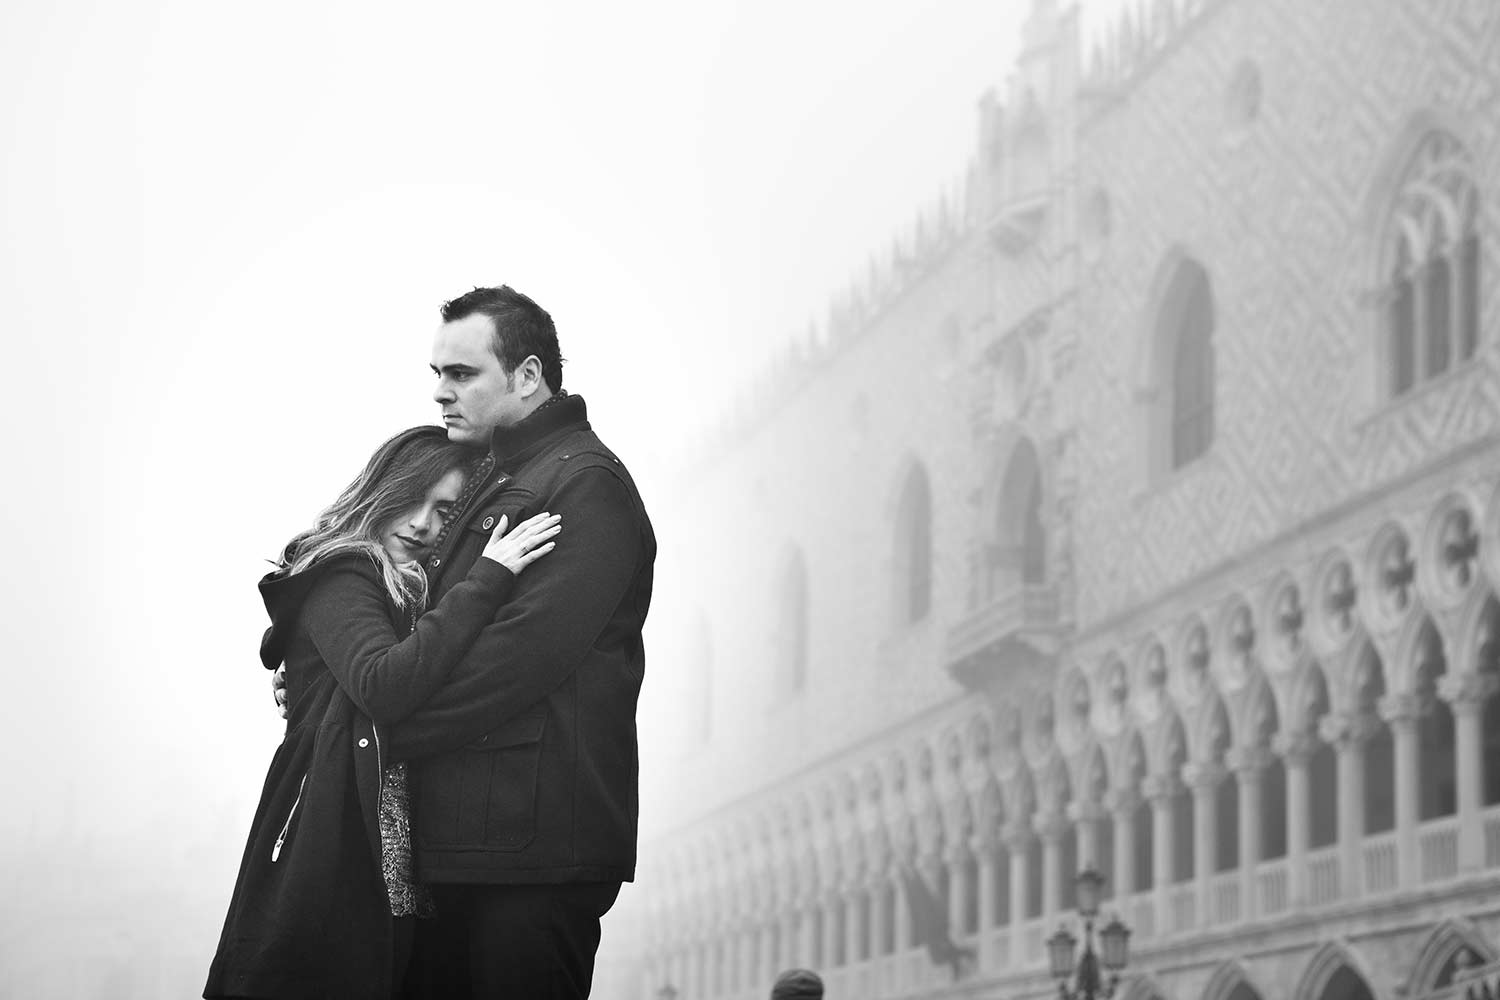 Letty and Hector in VeniceLetty and Hector in Venice